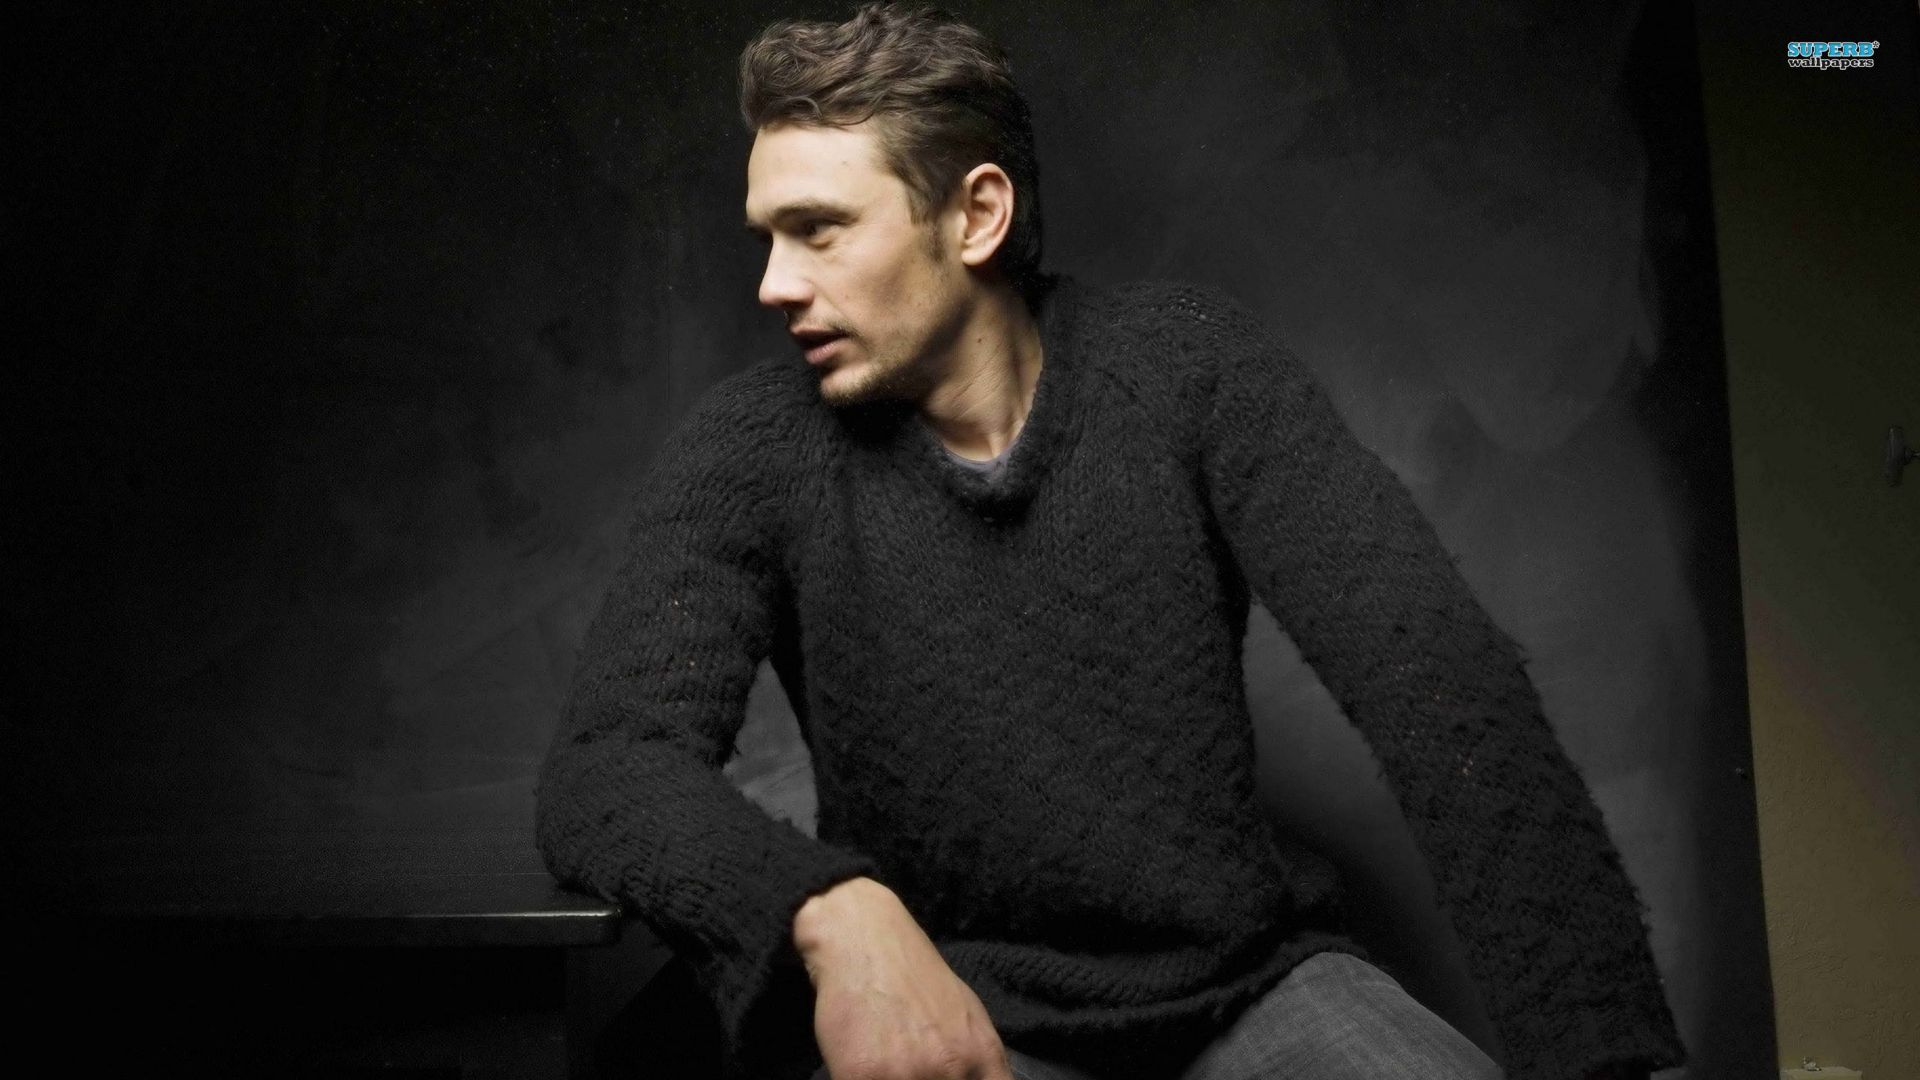 James Franco images